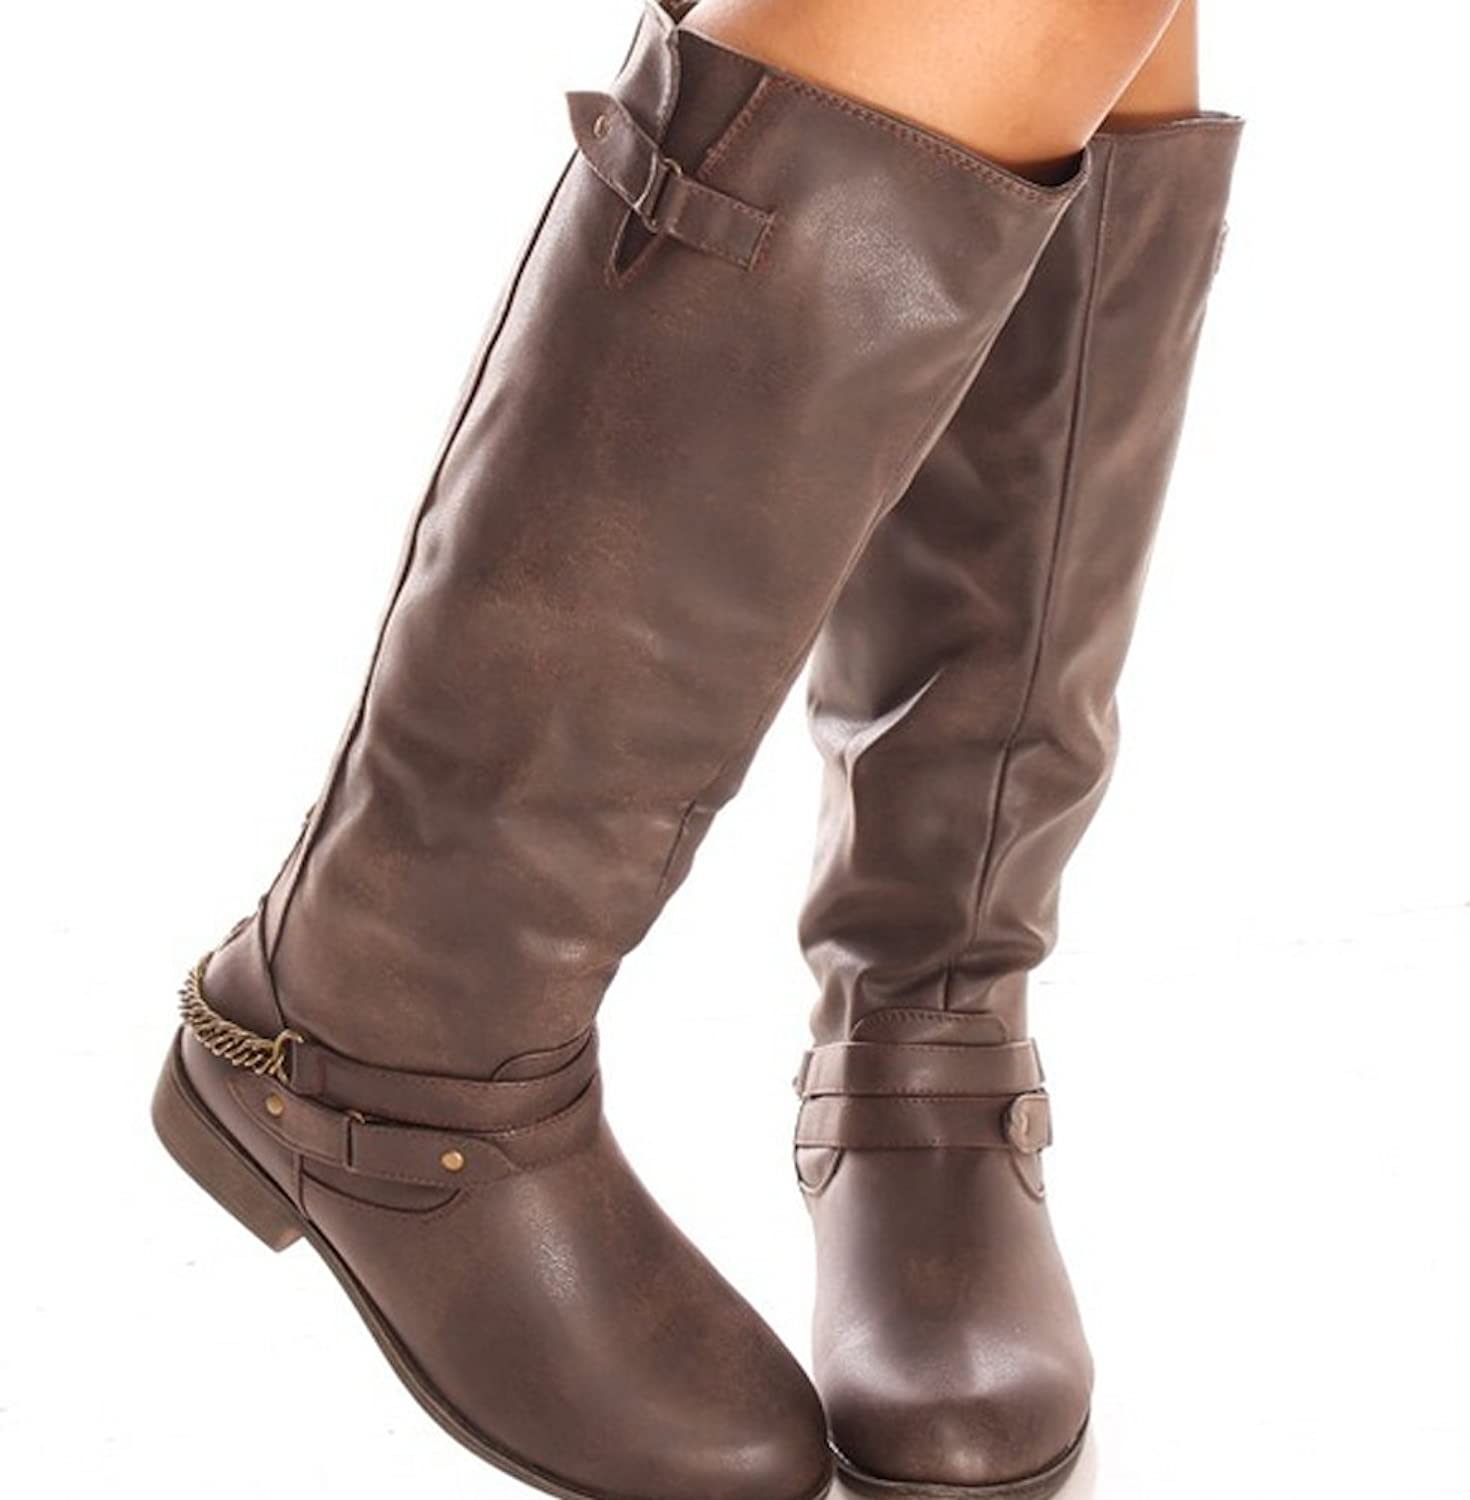 Women's Strappy Buckle Tan Faux Leather Riding Boots